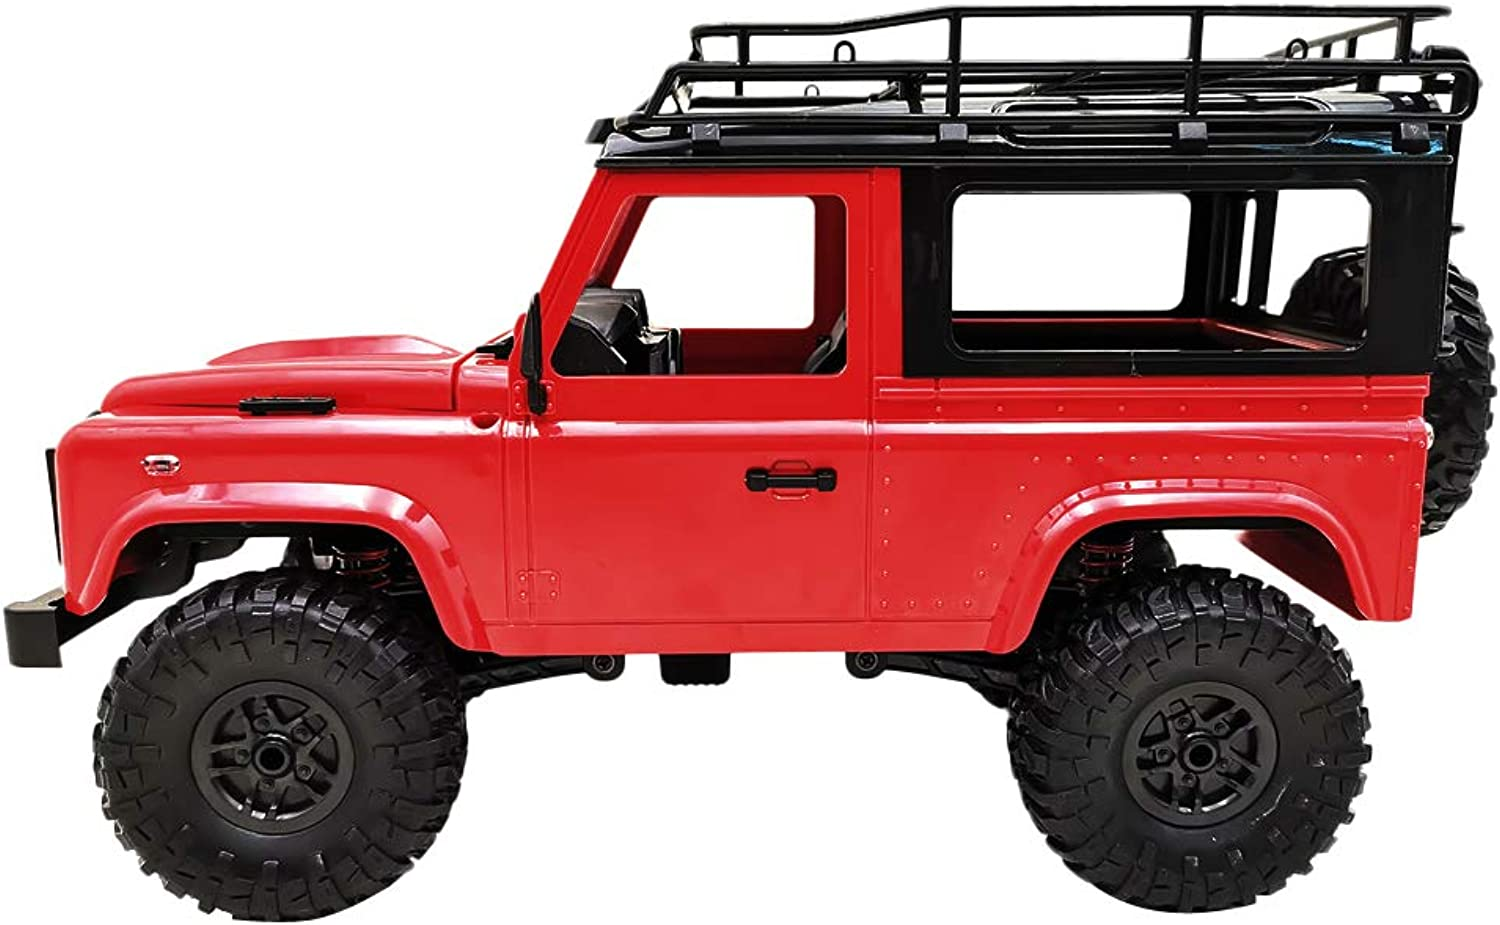 D DOLITY 1 12 Scale Remote Control RC Pickup Truck DIY 4WD Rock Crawler Climbing Truck Car Red